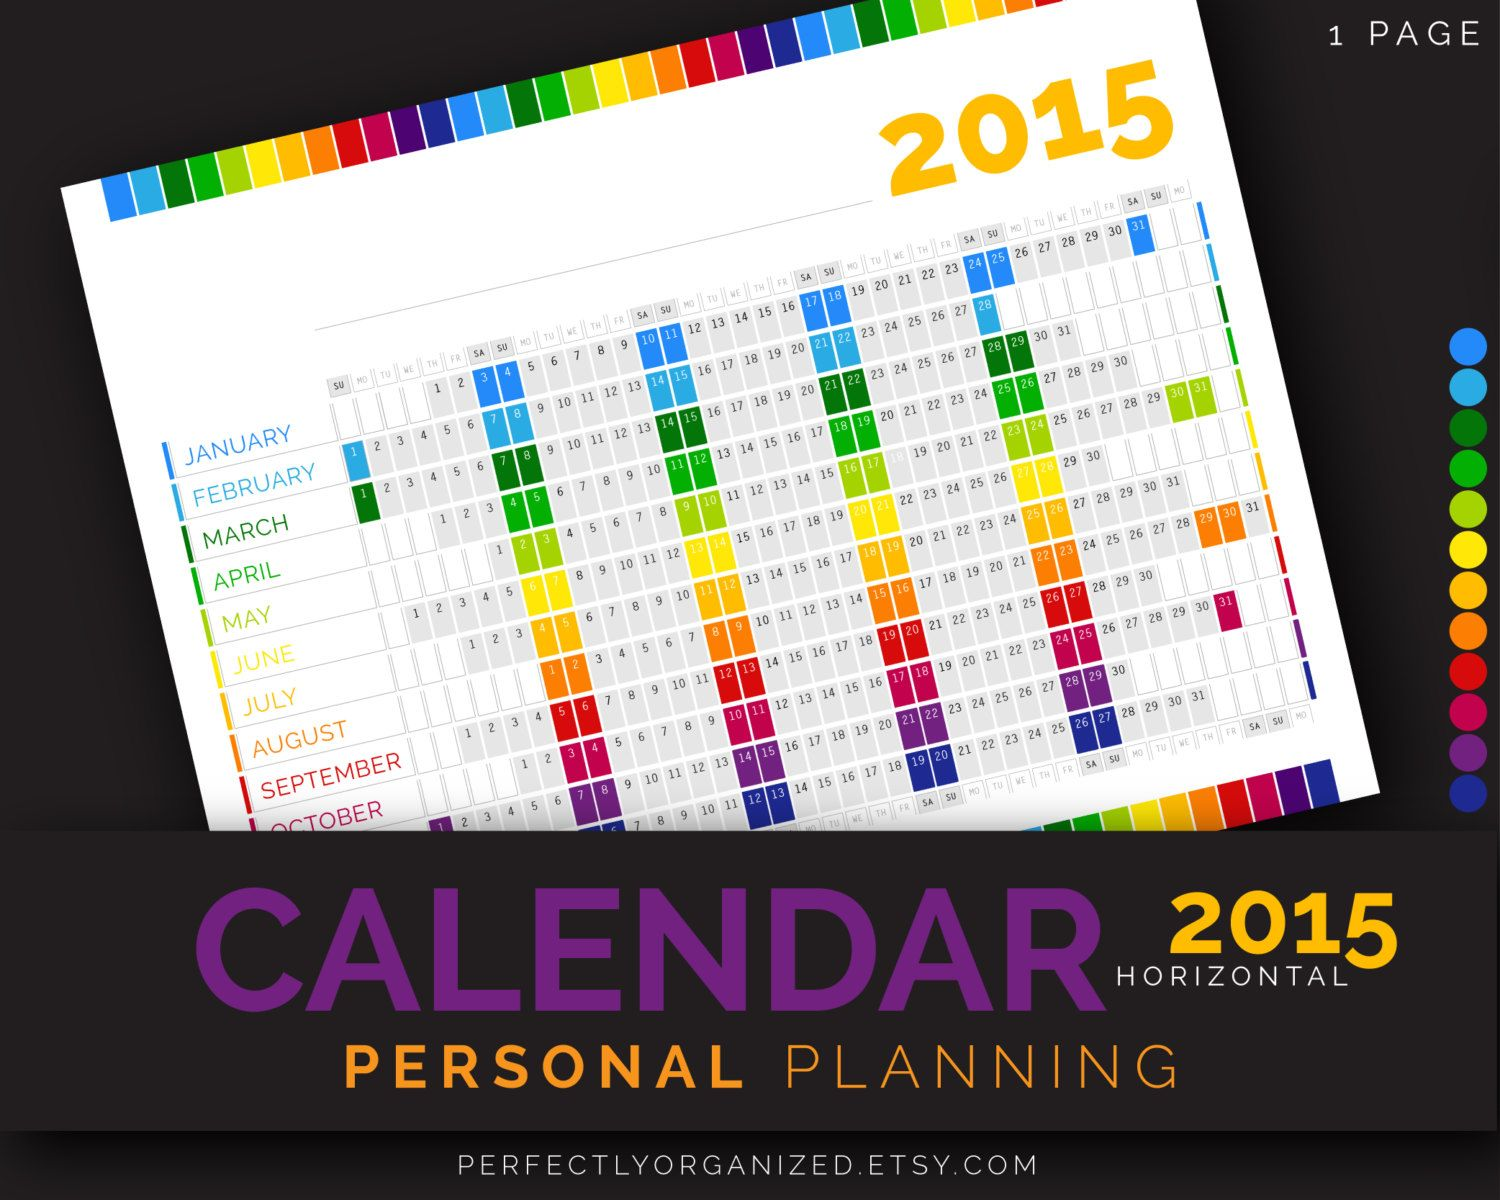 50% OFF 2015 Calendar Year Calendar Personal Planning Kit || Rainbow Printable Planner Organizer Binder PDF Printables